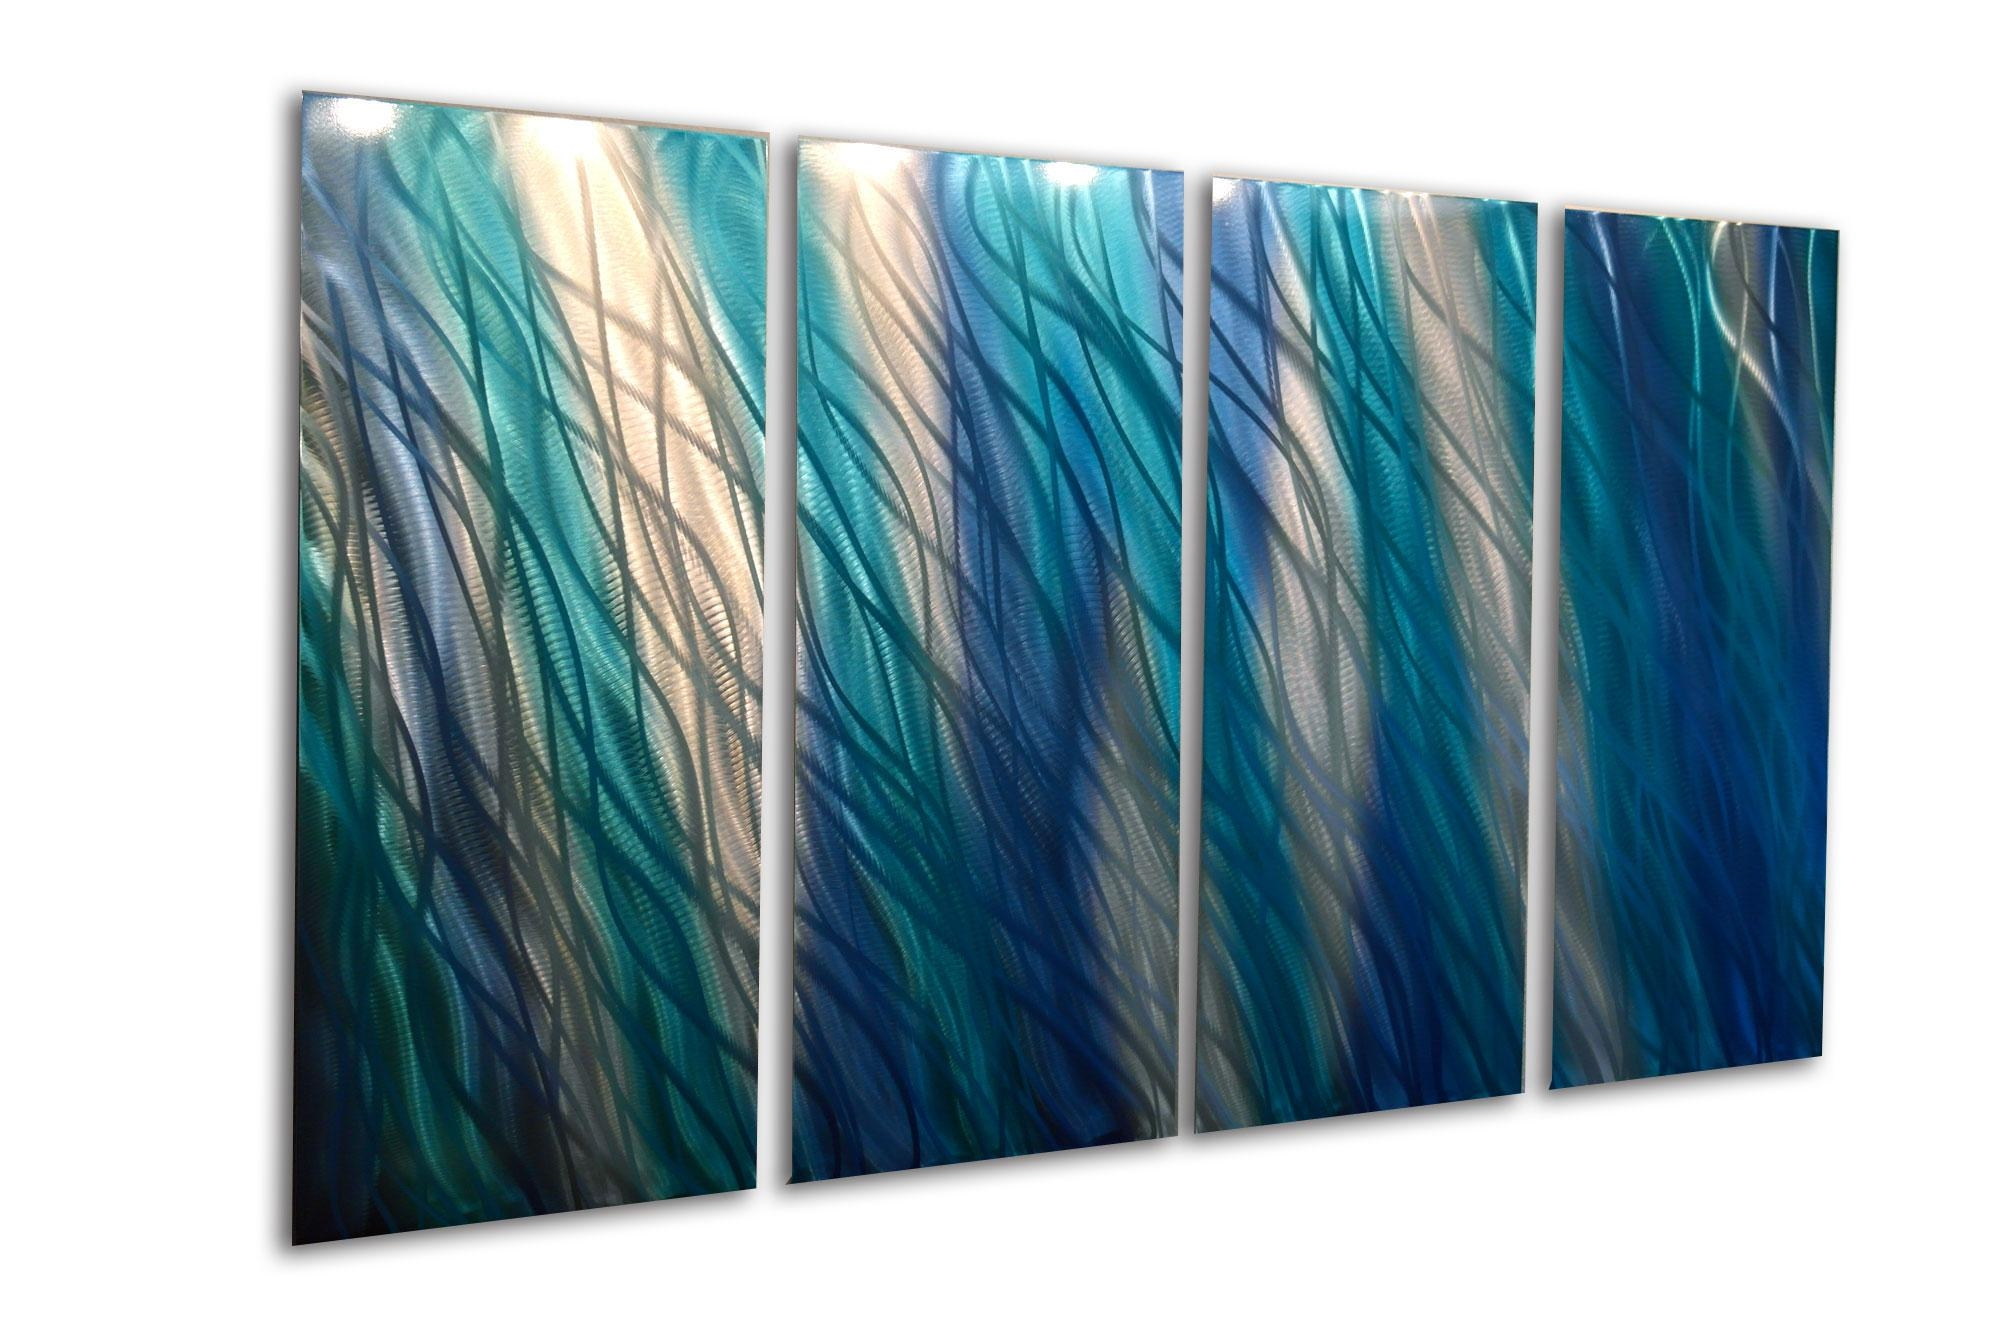 Reef Blue 36X63 – Metal Wall Art Abstract Sculpture Modern Decor With Blue And White Wall Art (Image 15 of 20)